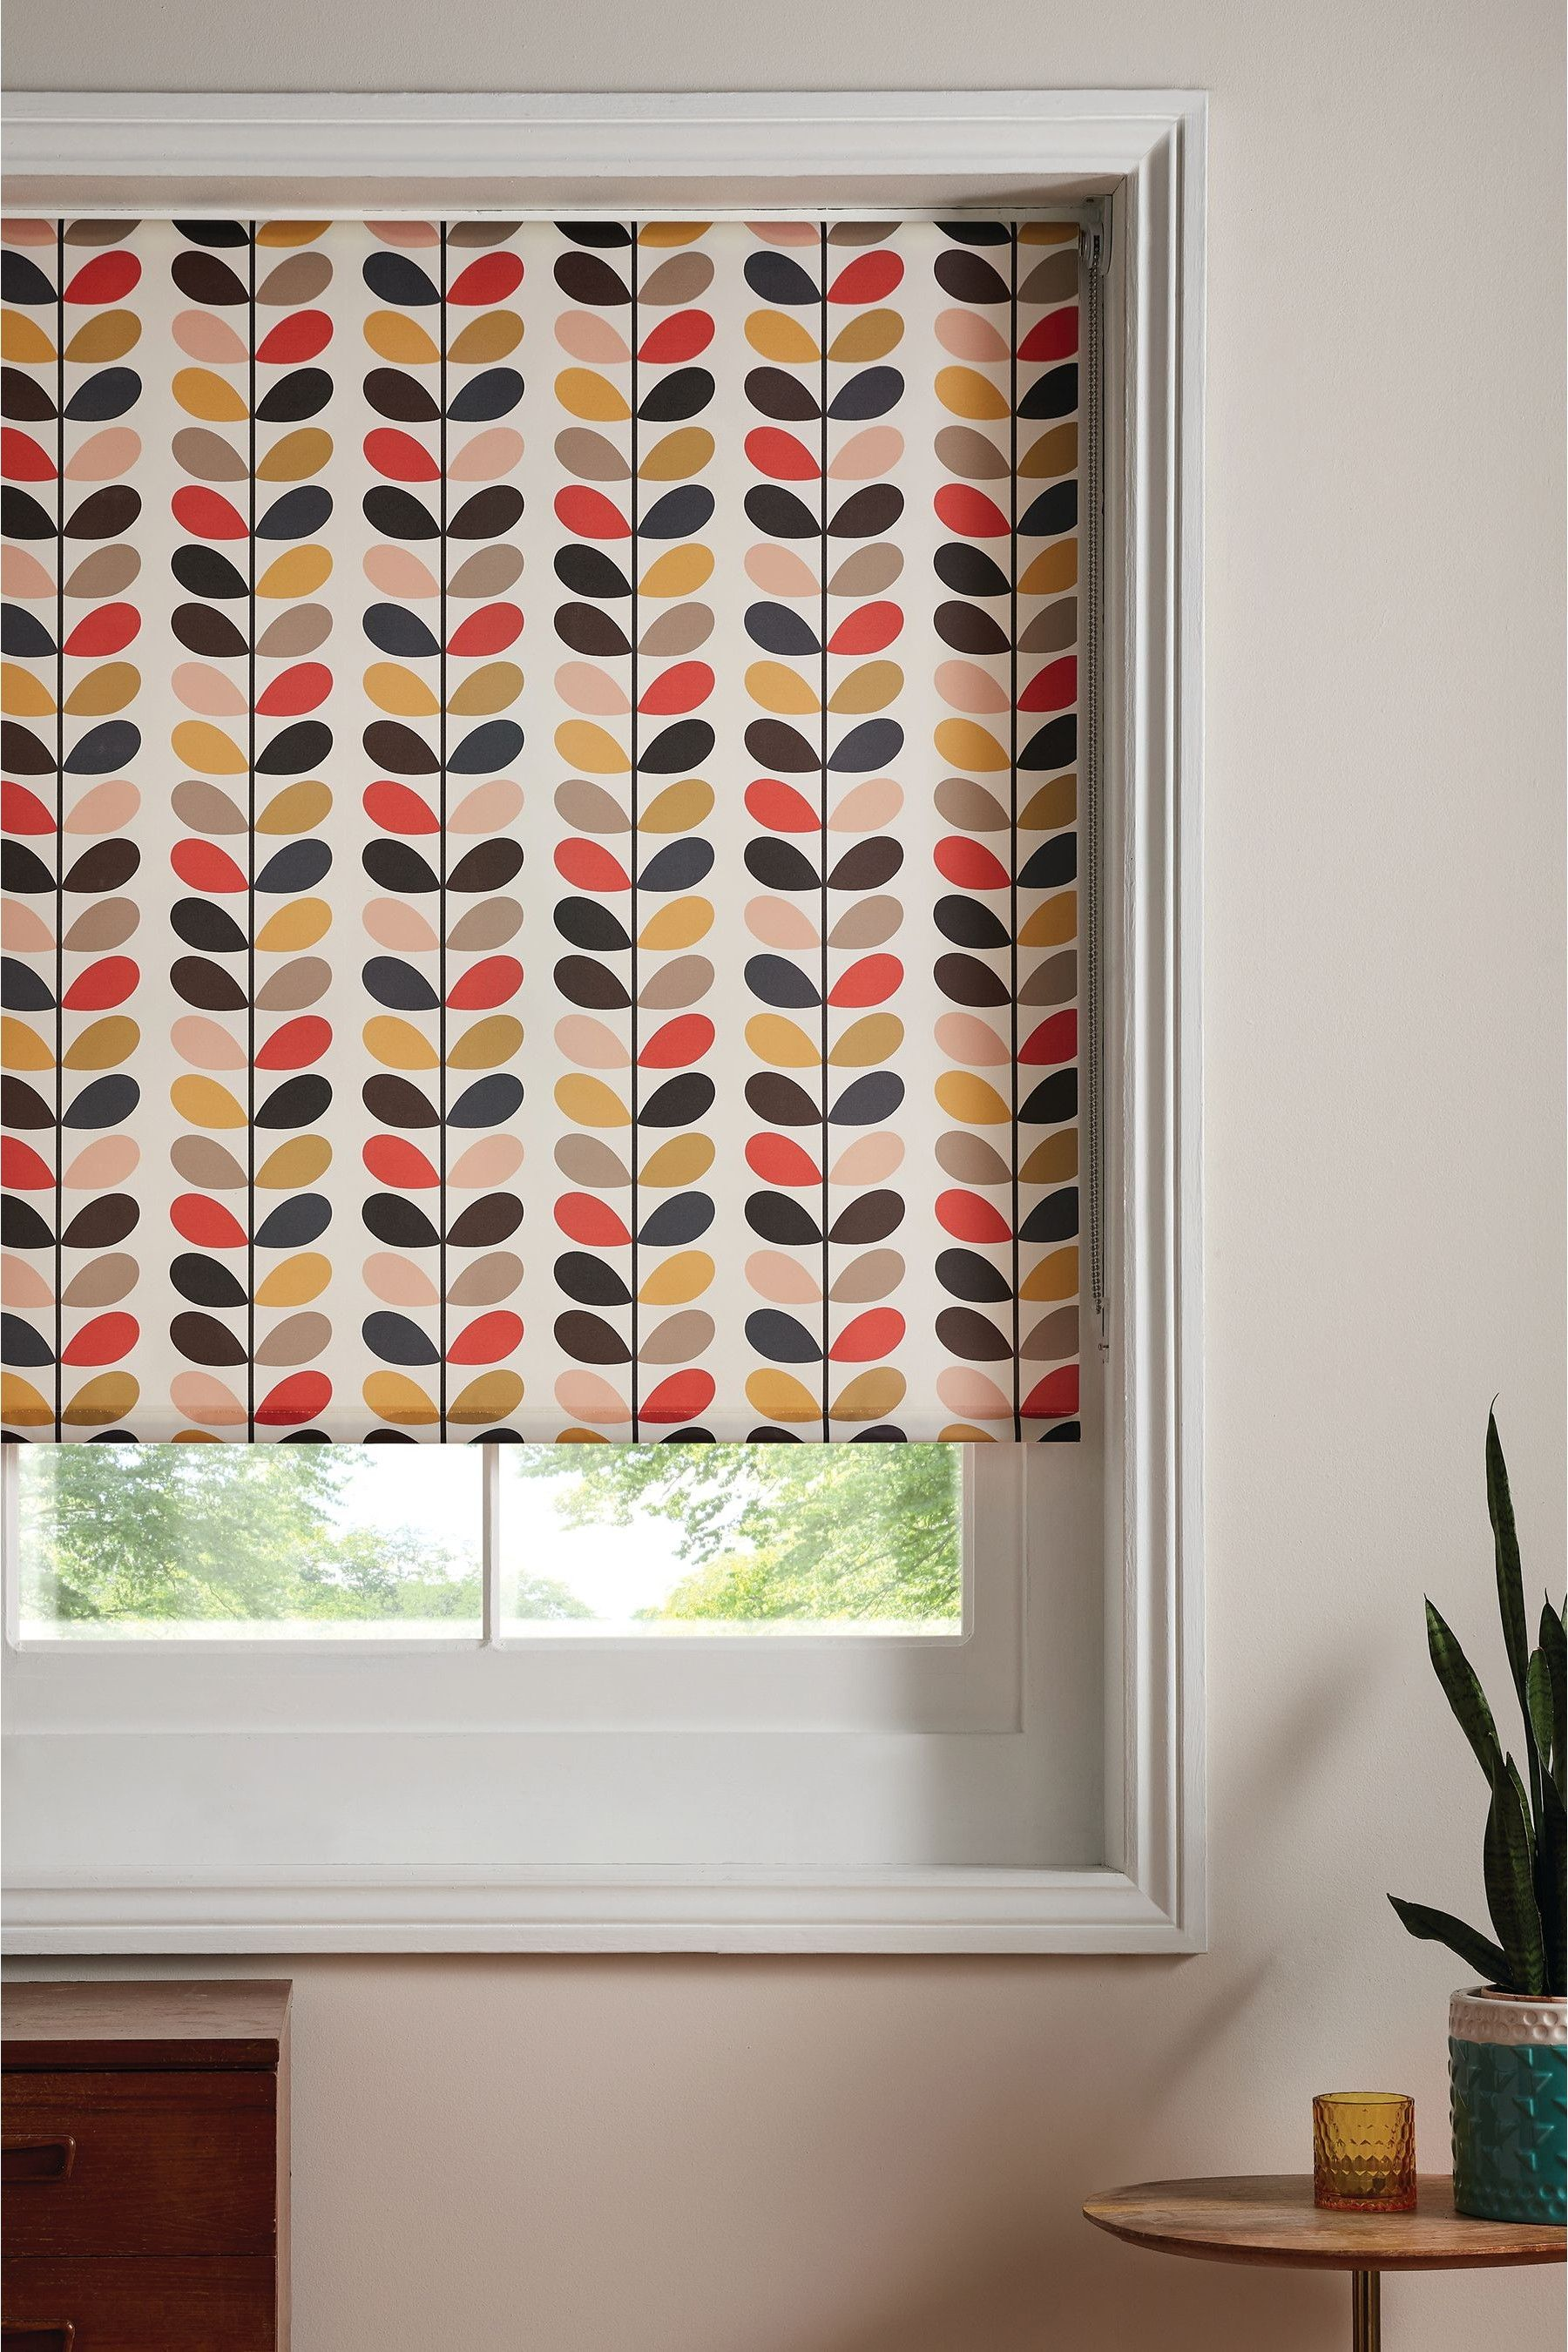 Orla Kiely Linear Stem Roller Blind In 2020 Red Blinds Blinds Roller Blinds